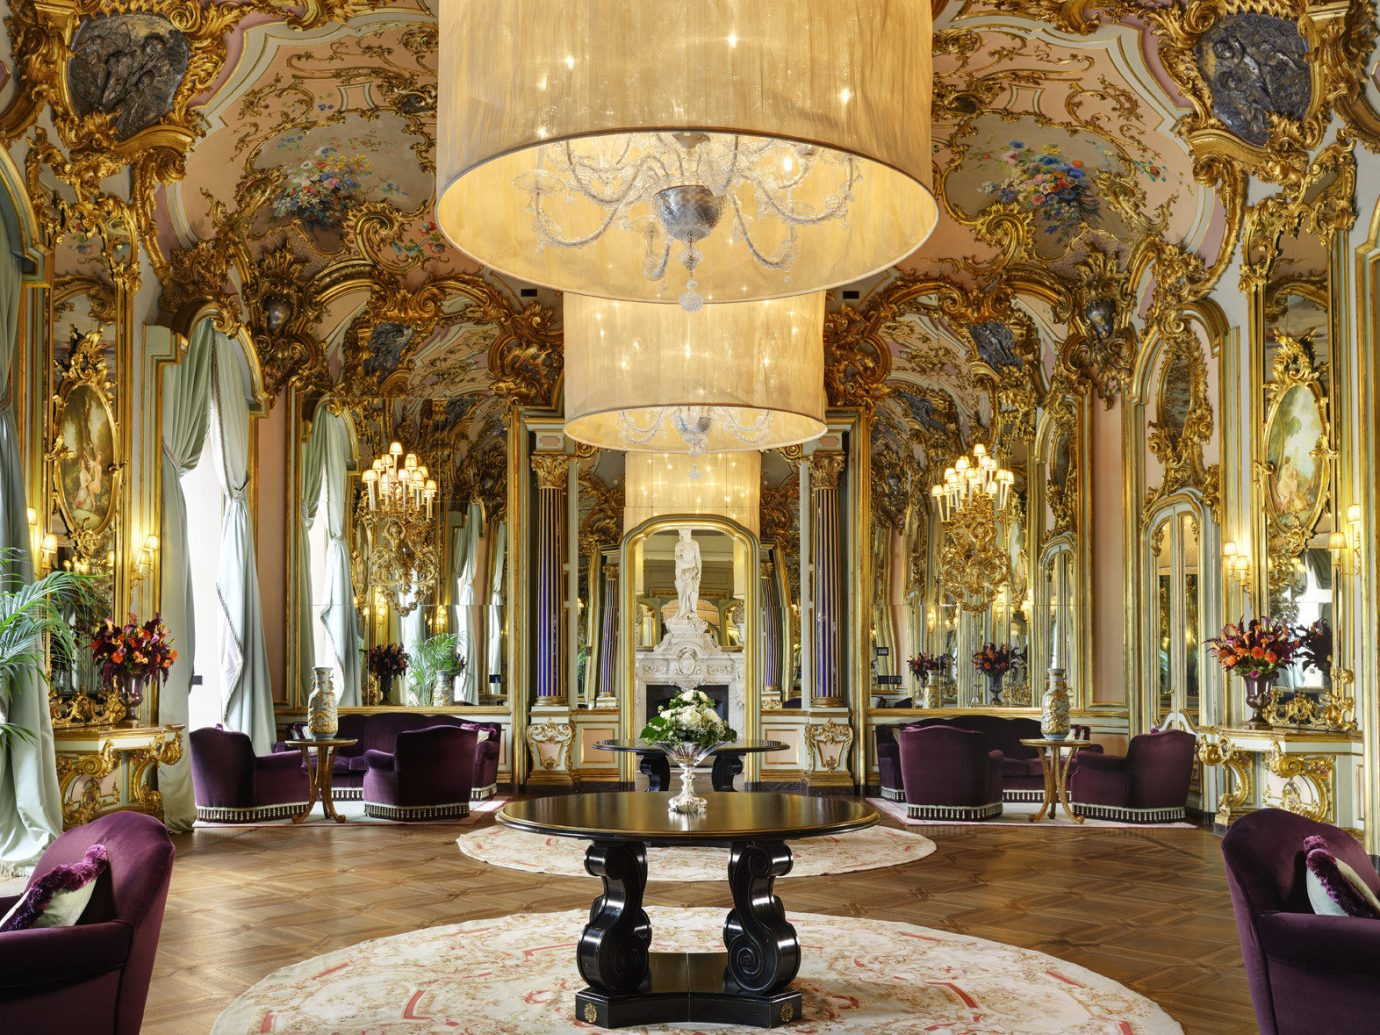 Florence Hotels Italy indoor window building room Lobby palace estate interior design place of worship mansion chapel altar synagogue ballroom decorated furniture several